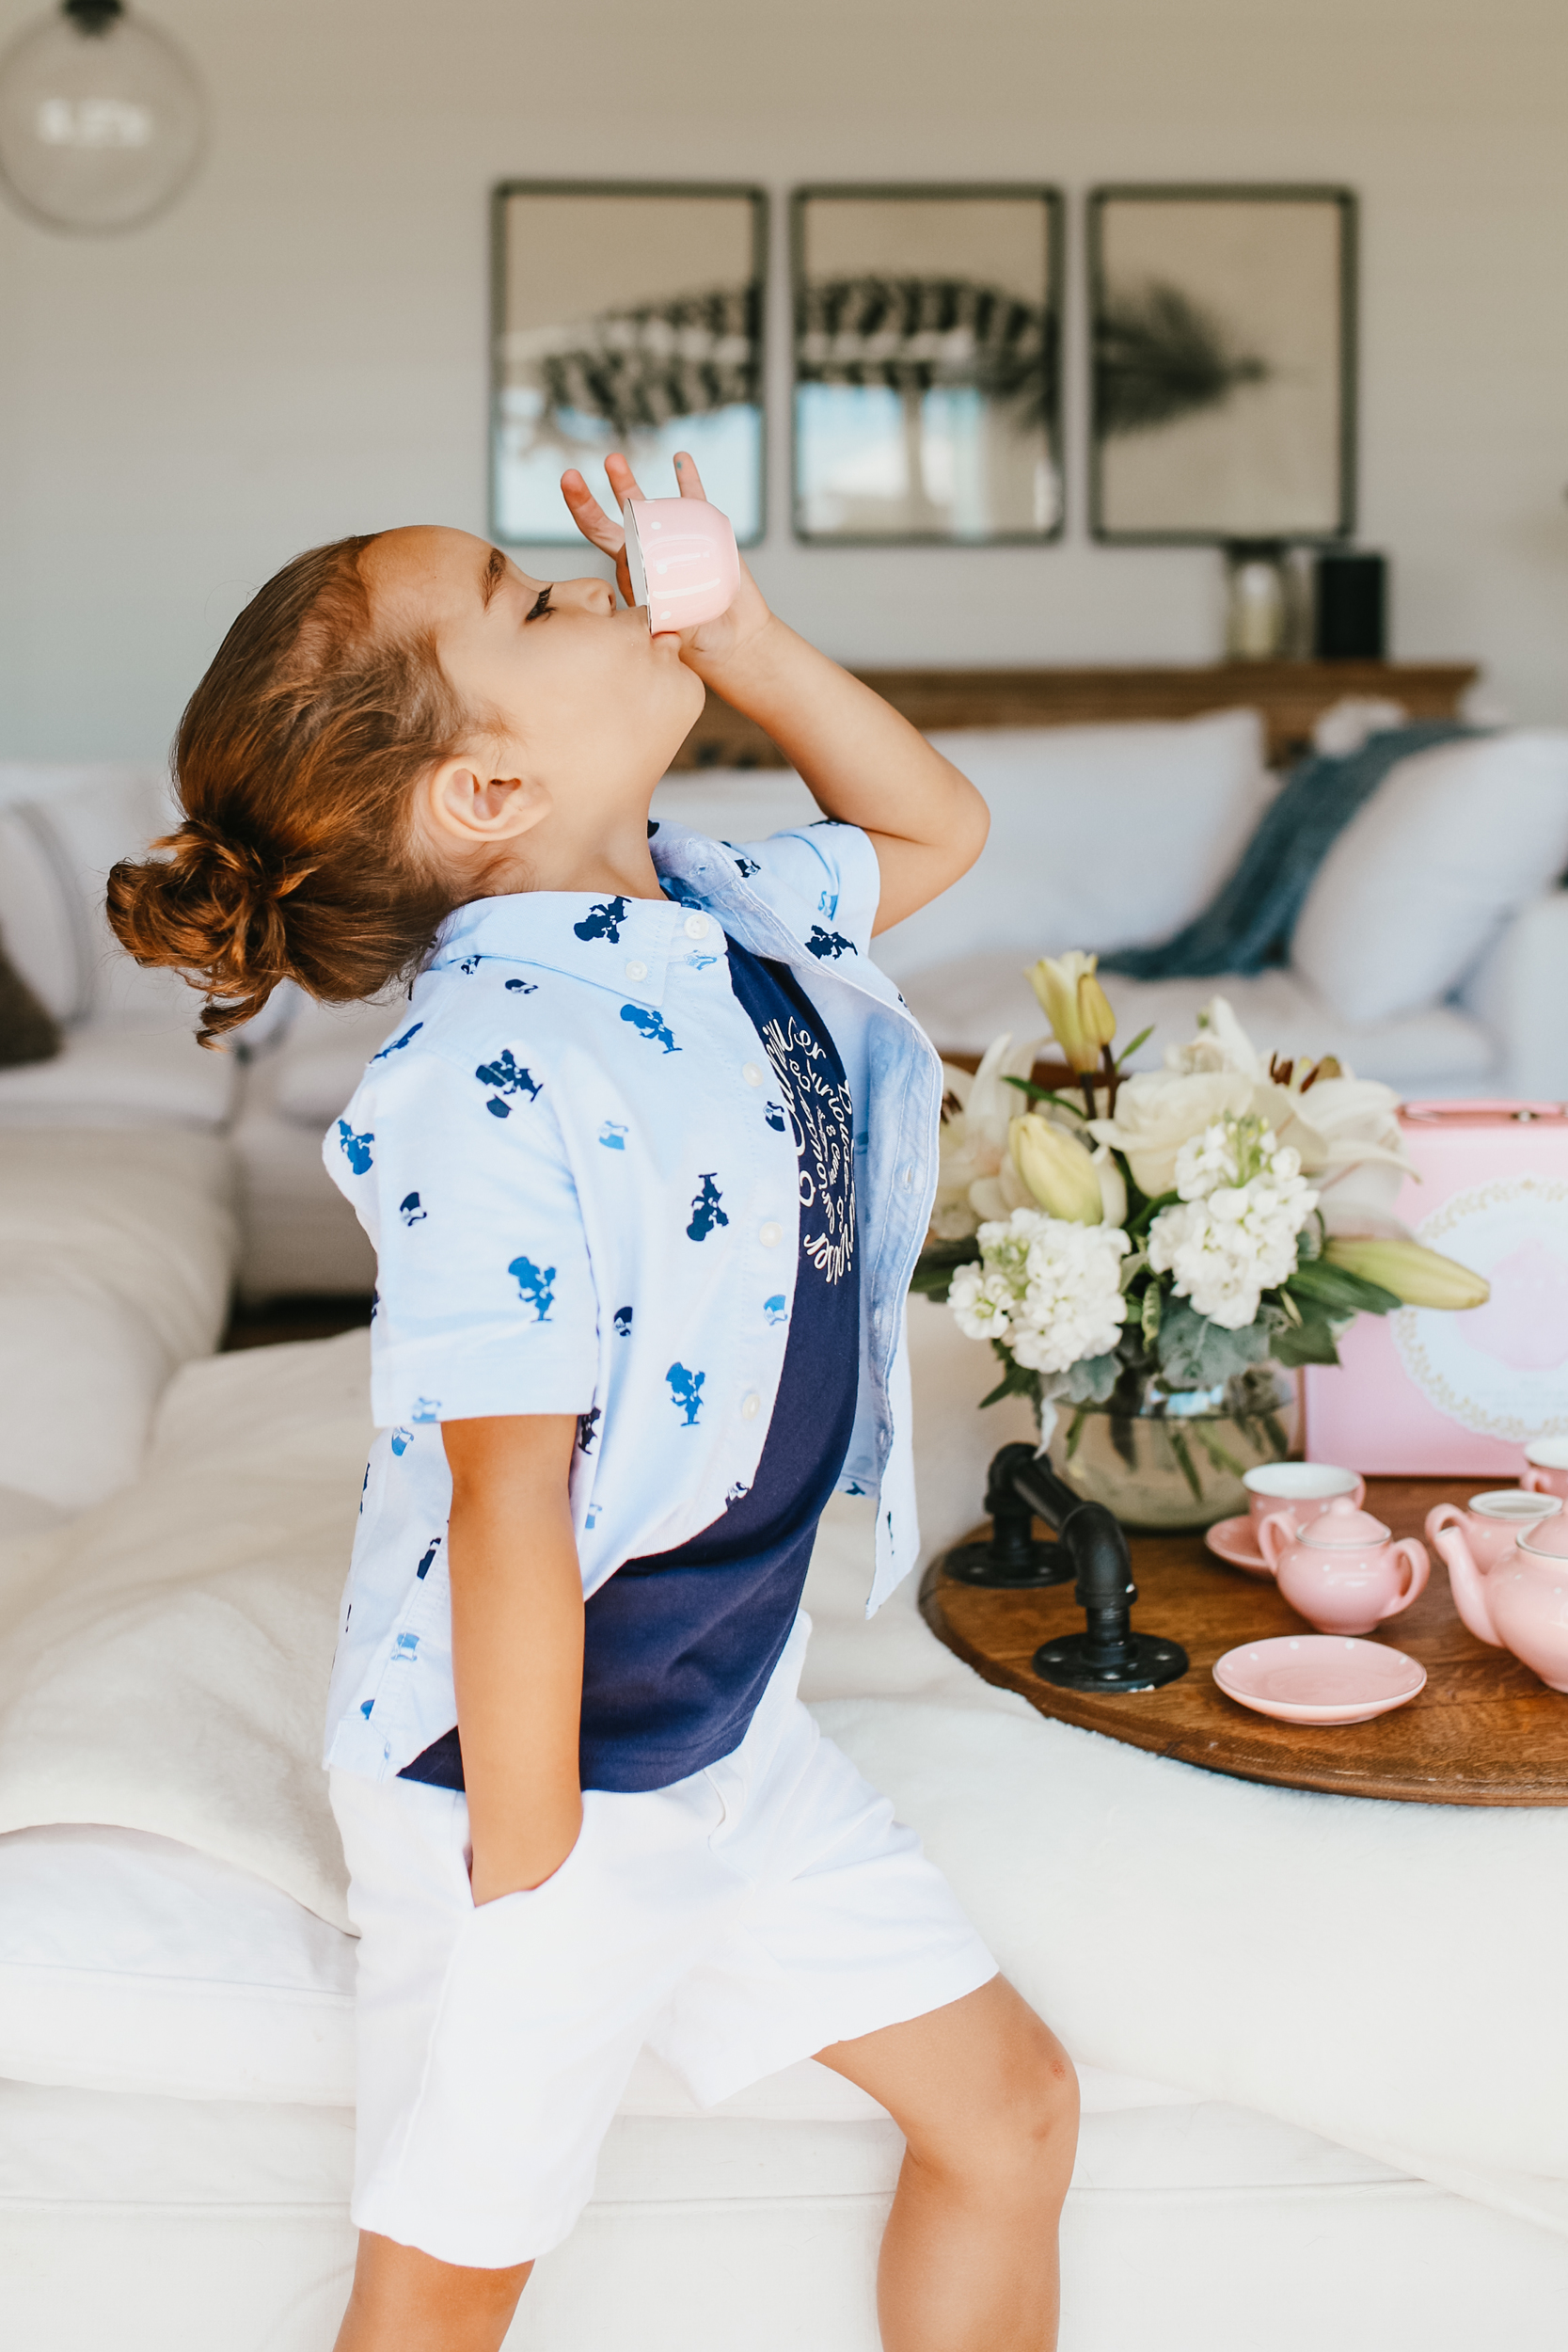 boy drinking from a teacup